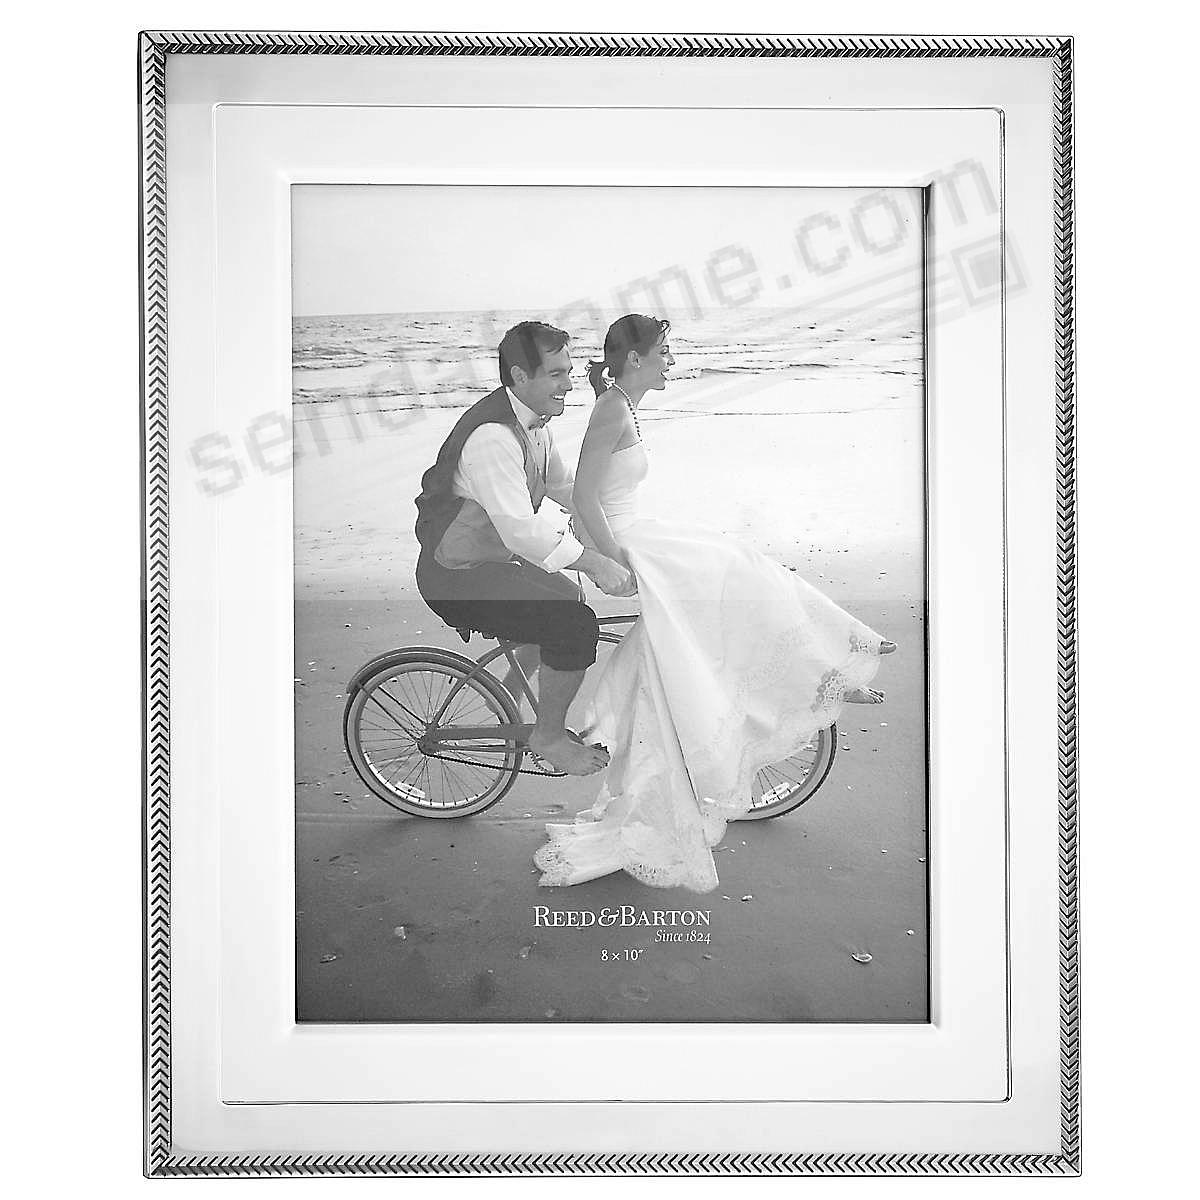 KENLIE Reed & Barton® Silverplate 8x10 frame - Engraveable